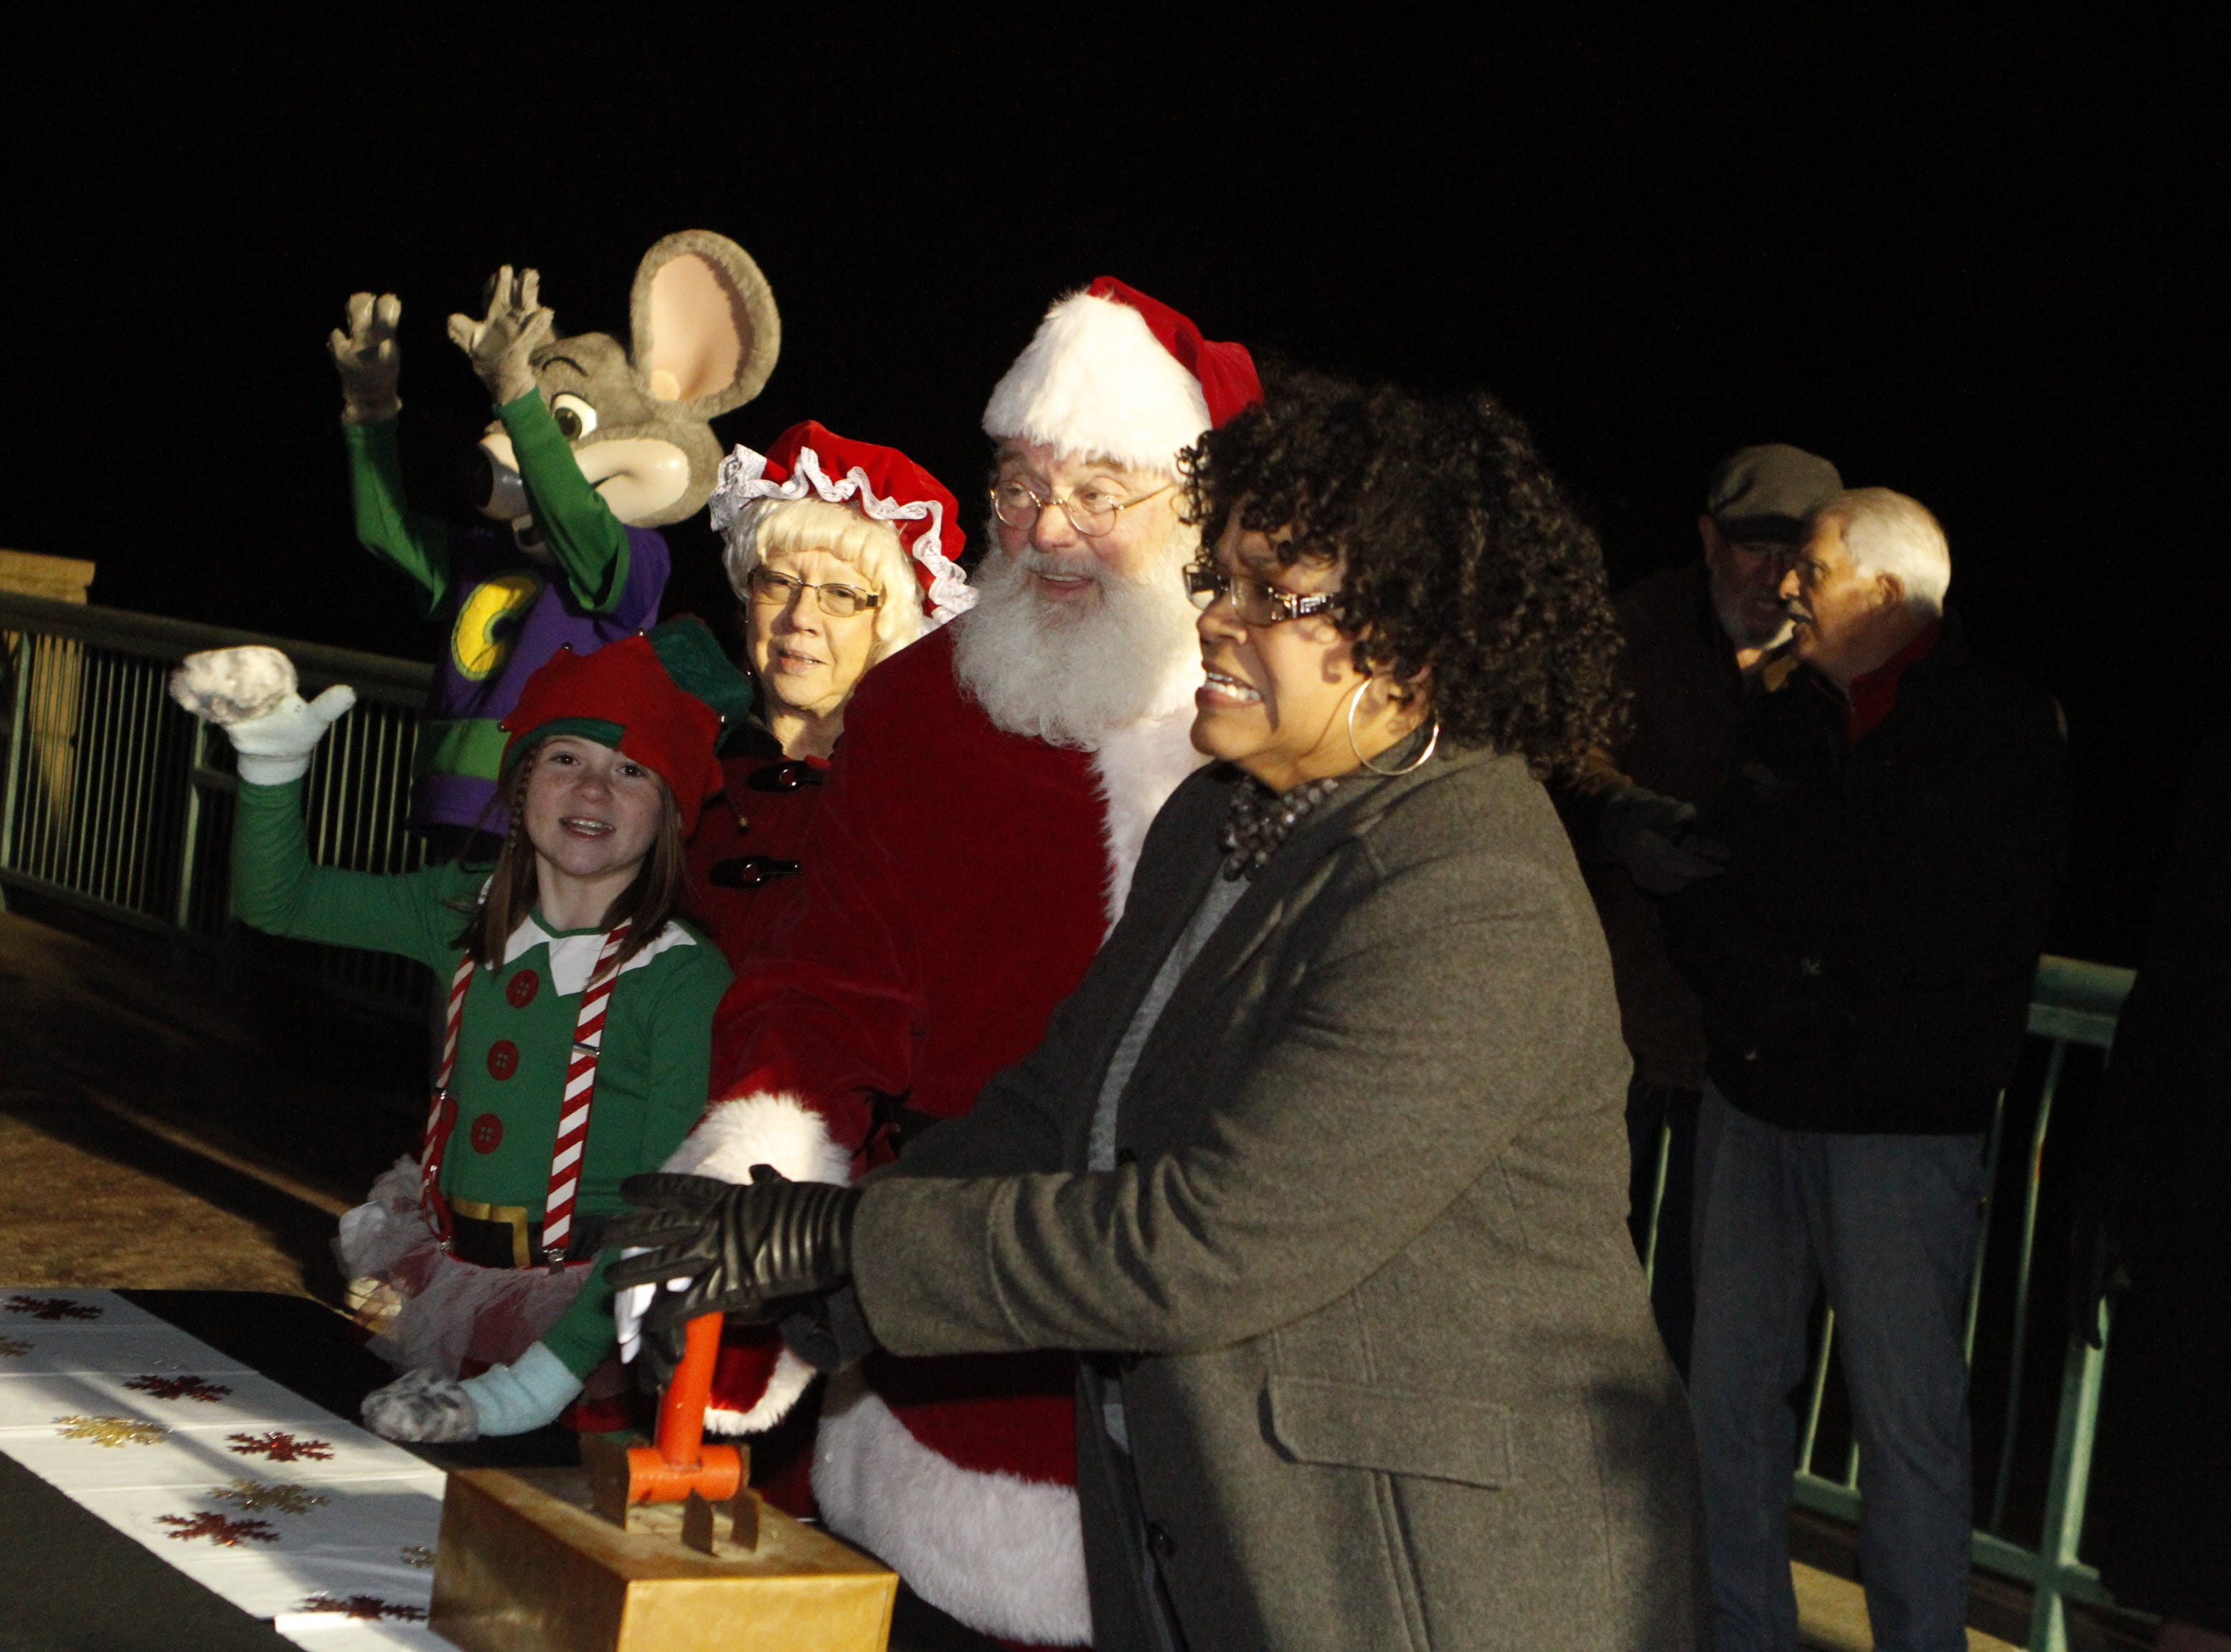 Mayor mayor pro tem Councilwoman Valerie Guzman and Santa Claus flip the switch as the City of Clarksville kicked off its annual Christmas on the Cumberland Tuesday, Nov. 20, 2018, with over 2 million lights in the display.